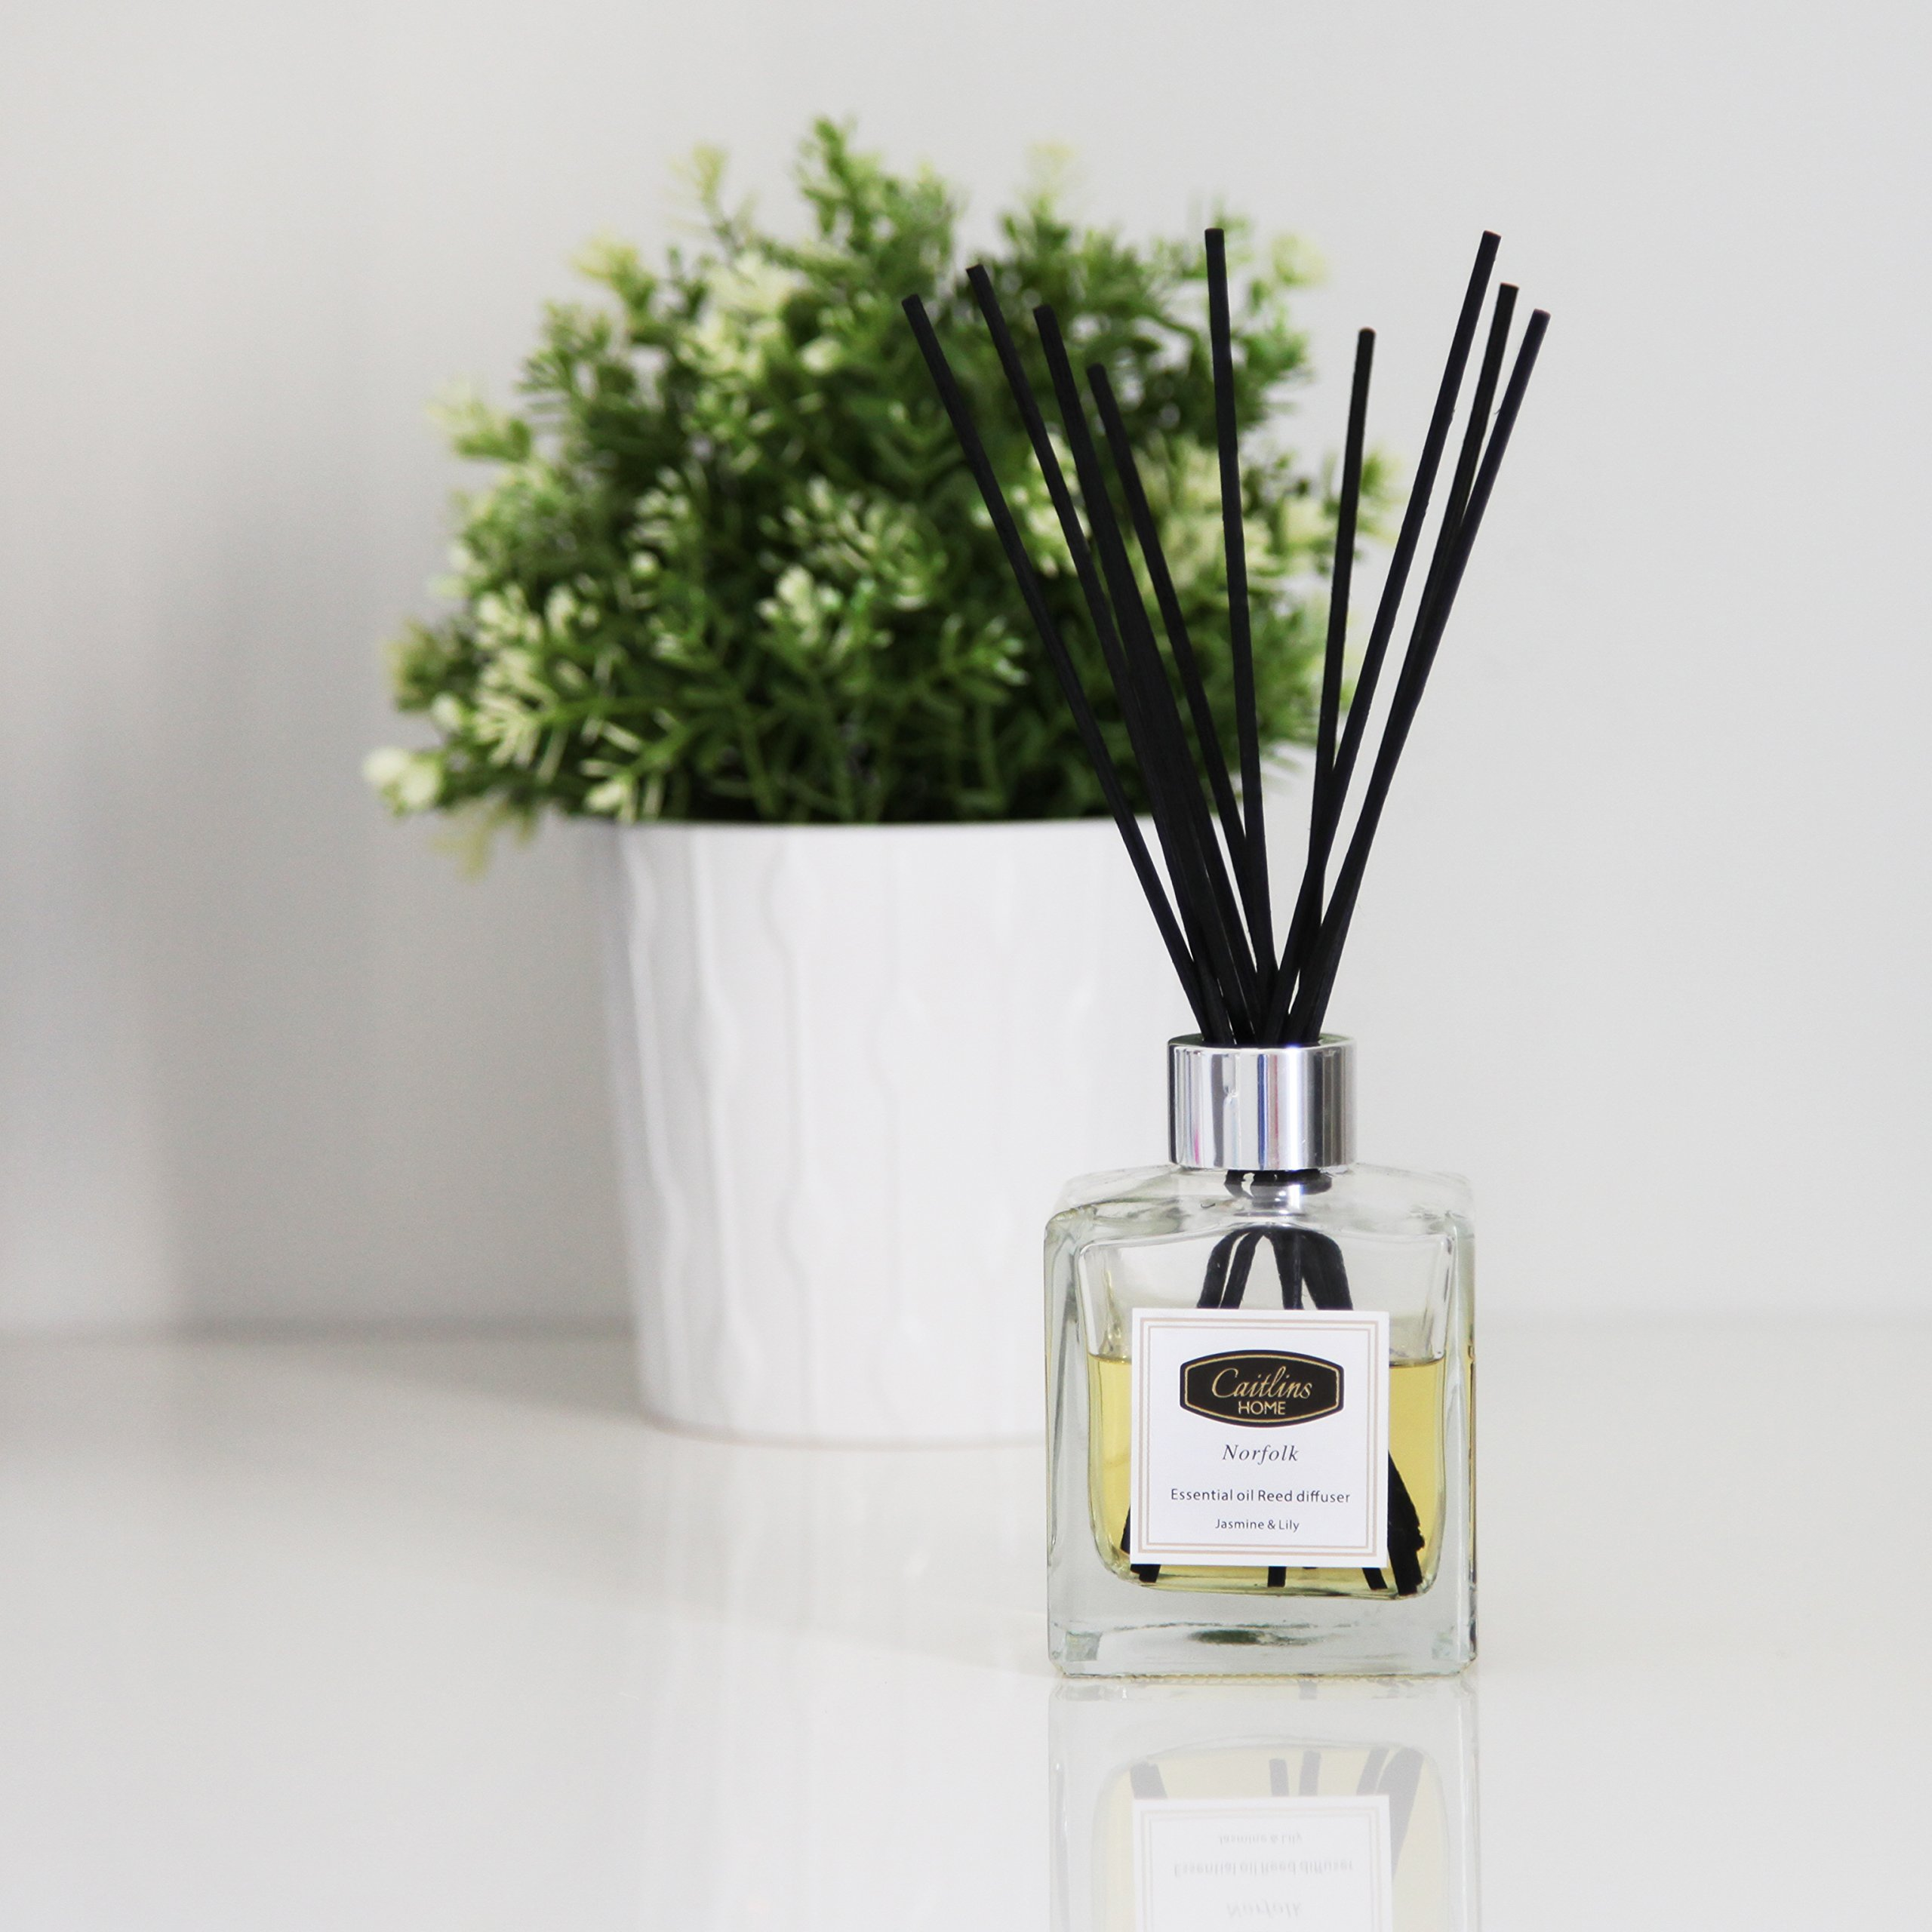 Caitlins Home Reed Diffuser Jasmine Lily Scent Natural Reed Sticks Home Fragrance Gift 4.4floz-125ml by Caitlins Home (Image #3)